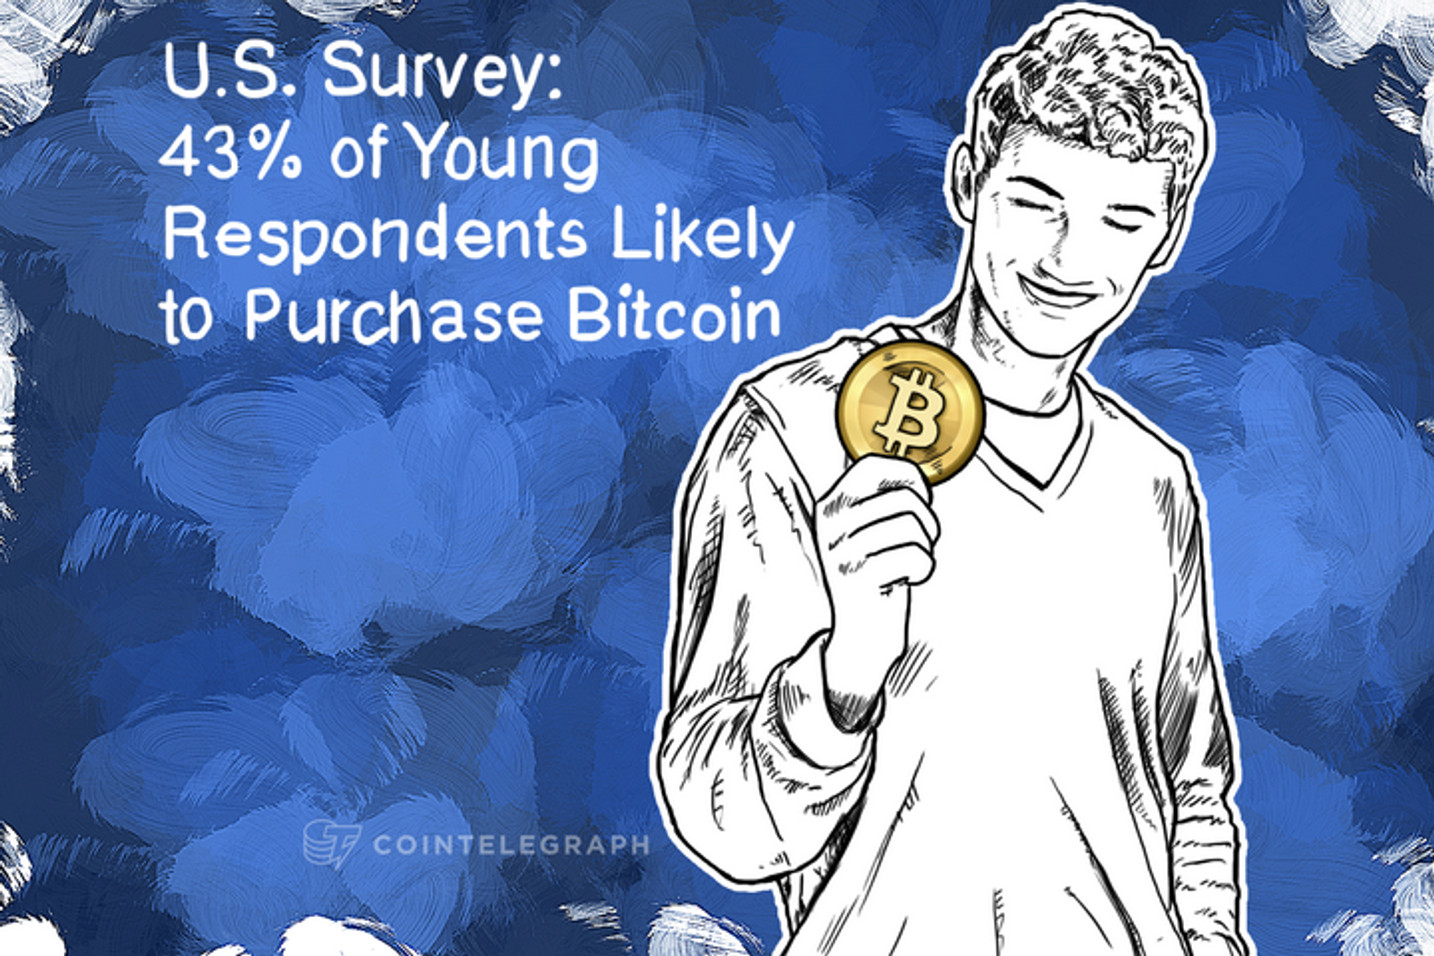 U.S. Survey: 43% of Young Respondents Likely to Purchase Bitcoin